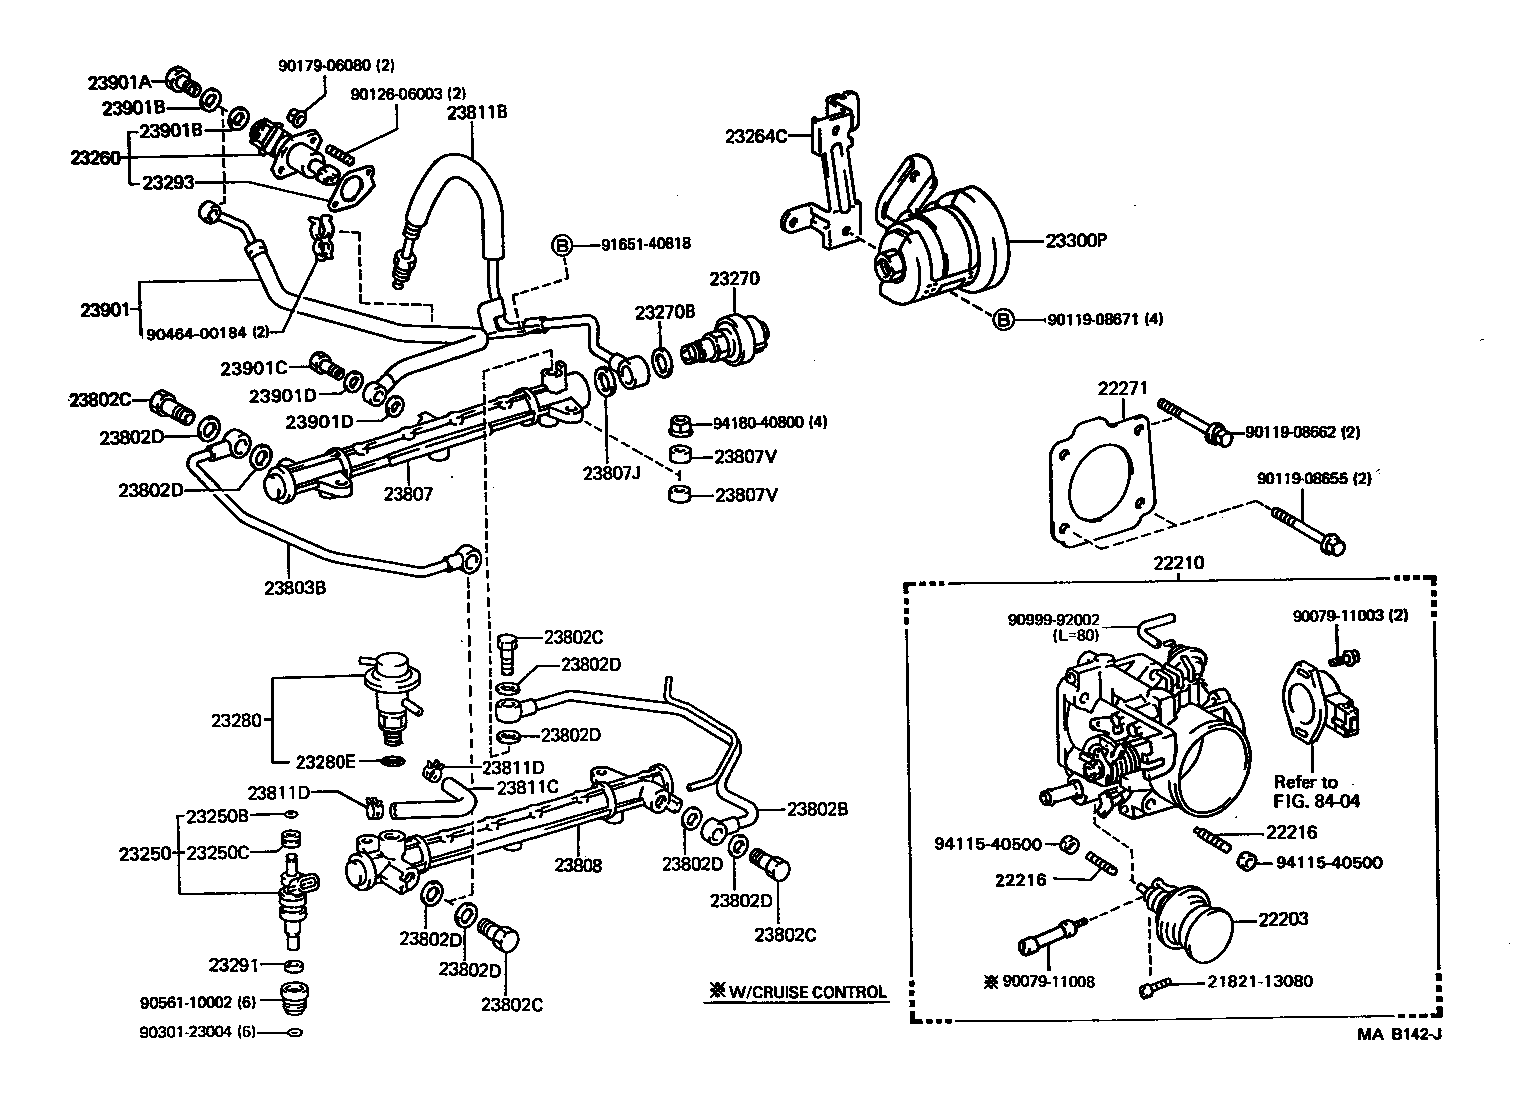 Fuel Injection System Illust No 1 Of 2 3vze P